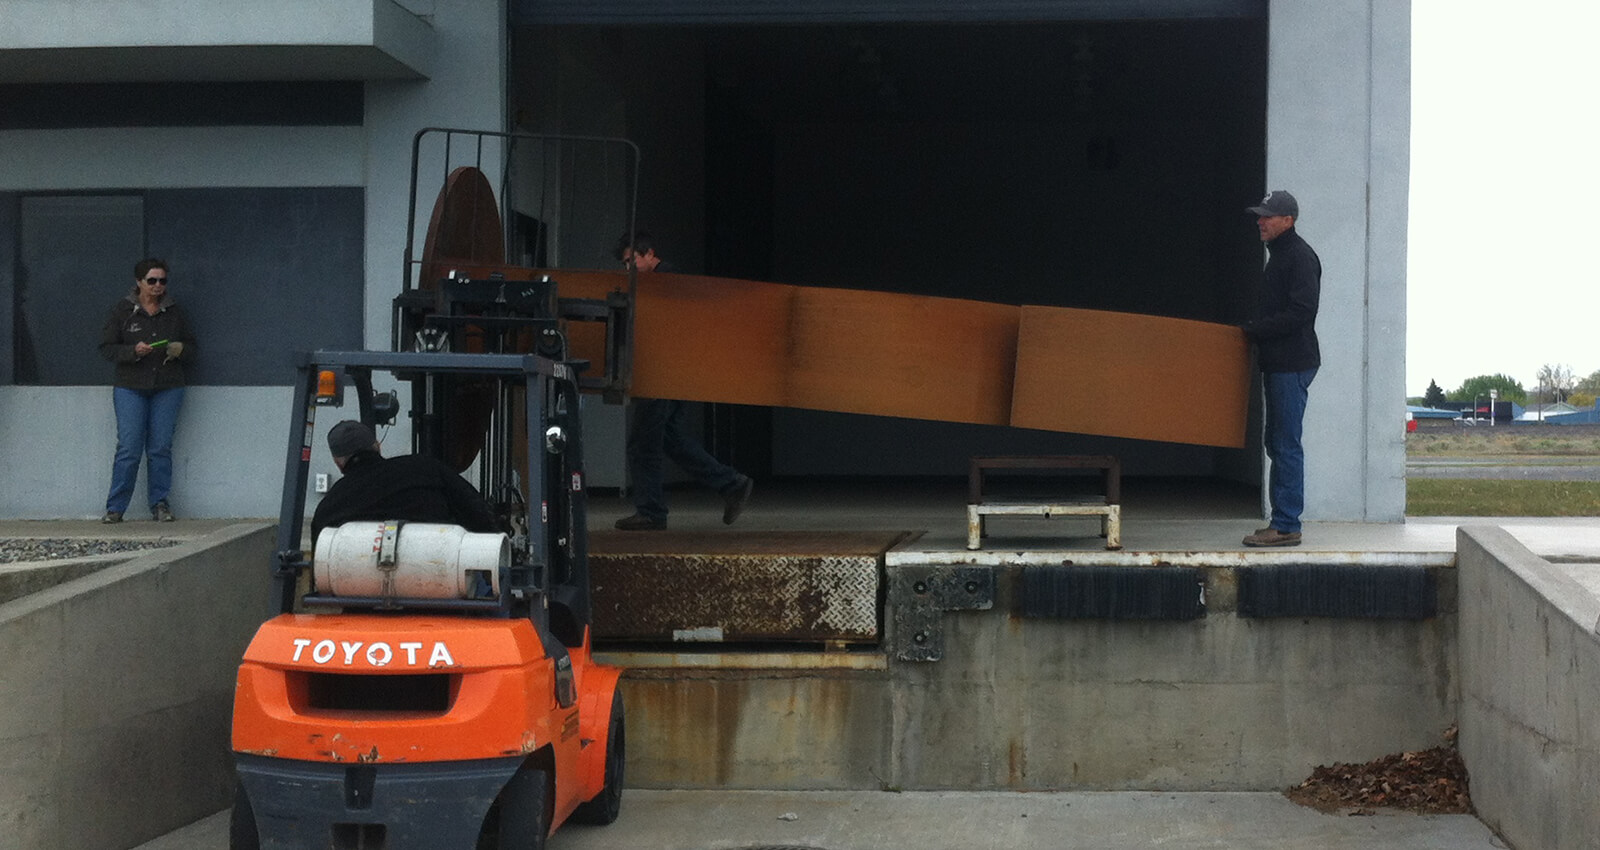 Aspirations artwork section being loaded on a forklift.